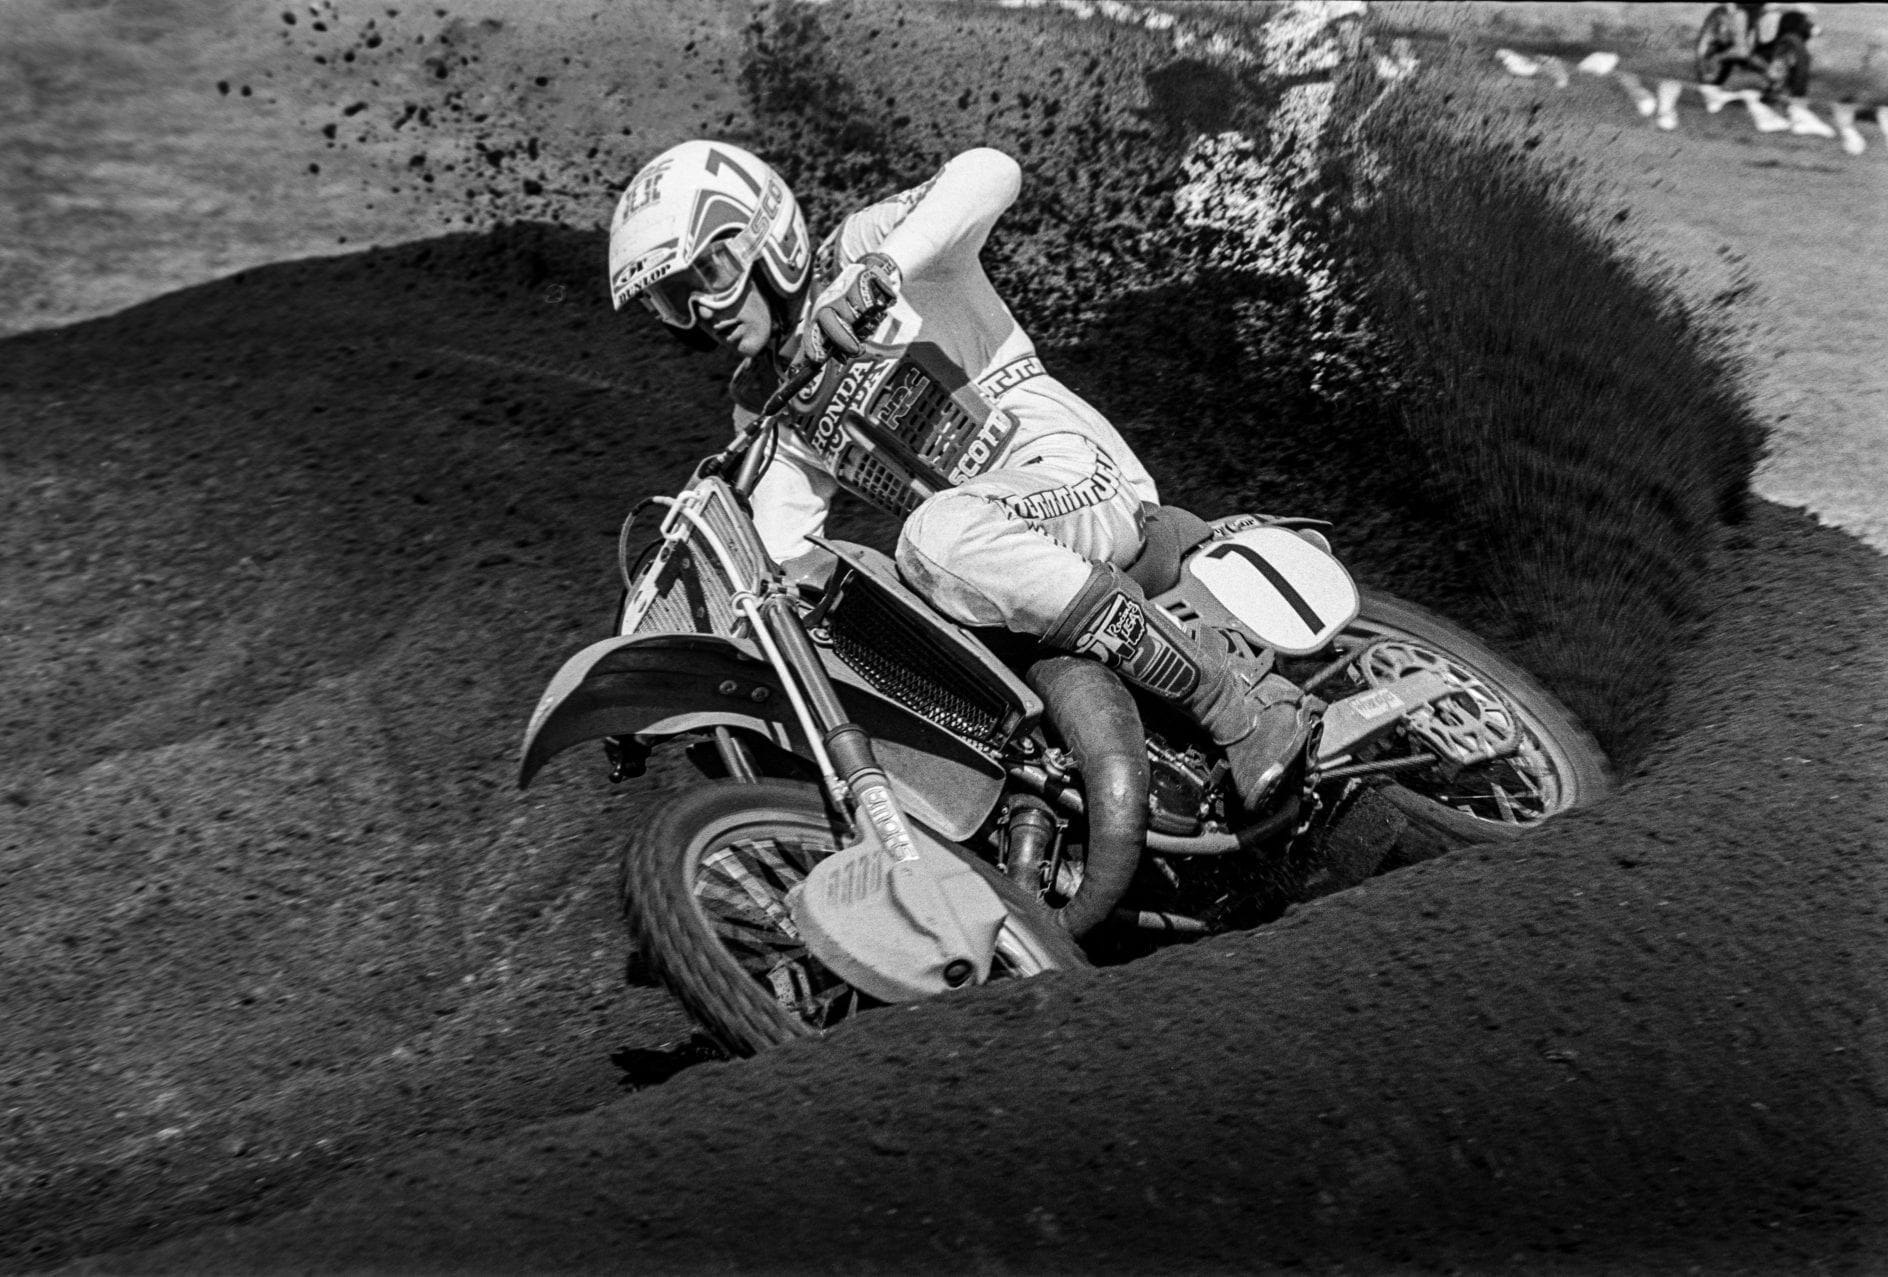 Daytona Supercross 1984 – Dave Dewhurst Photo